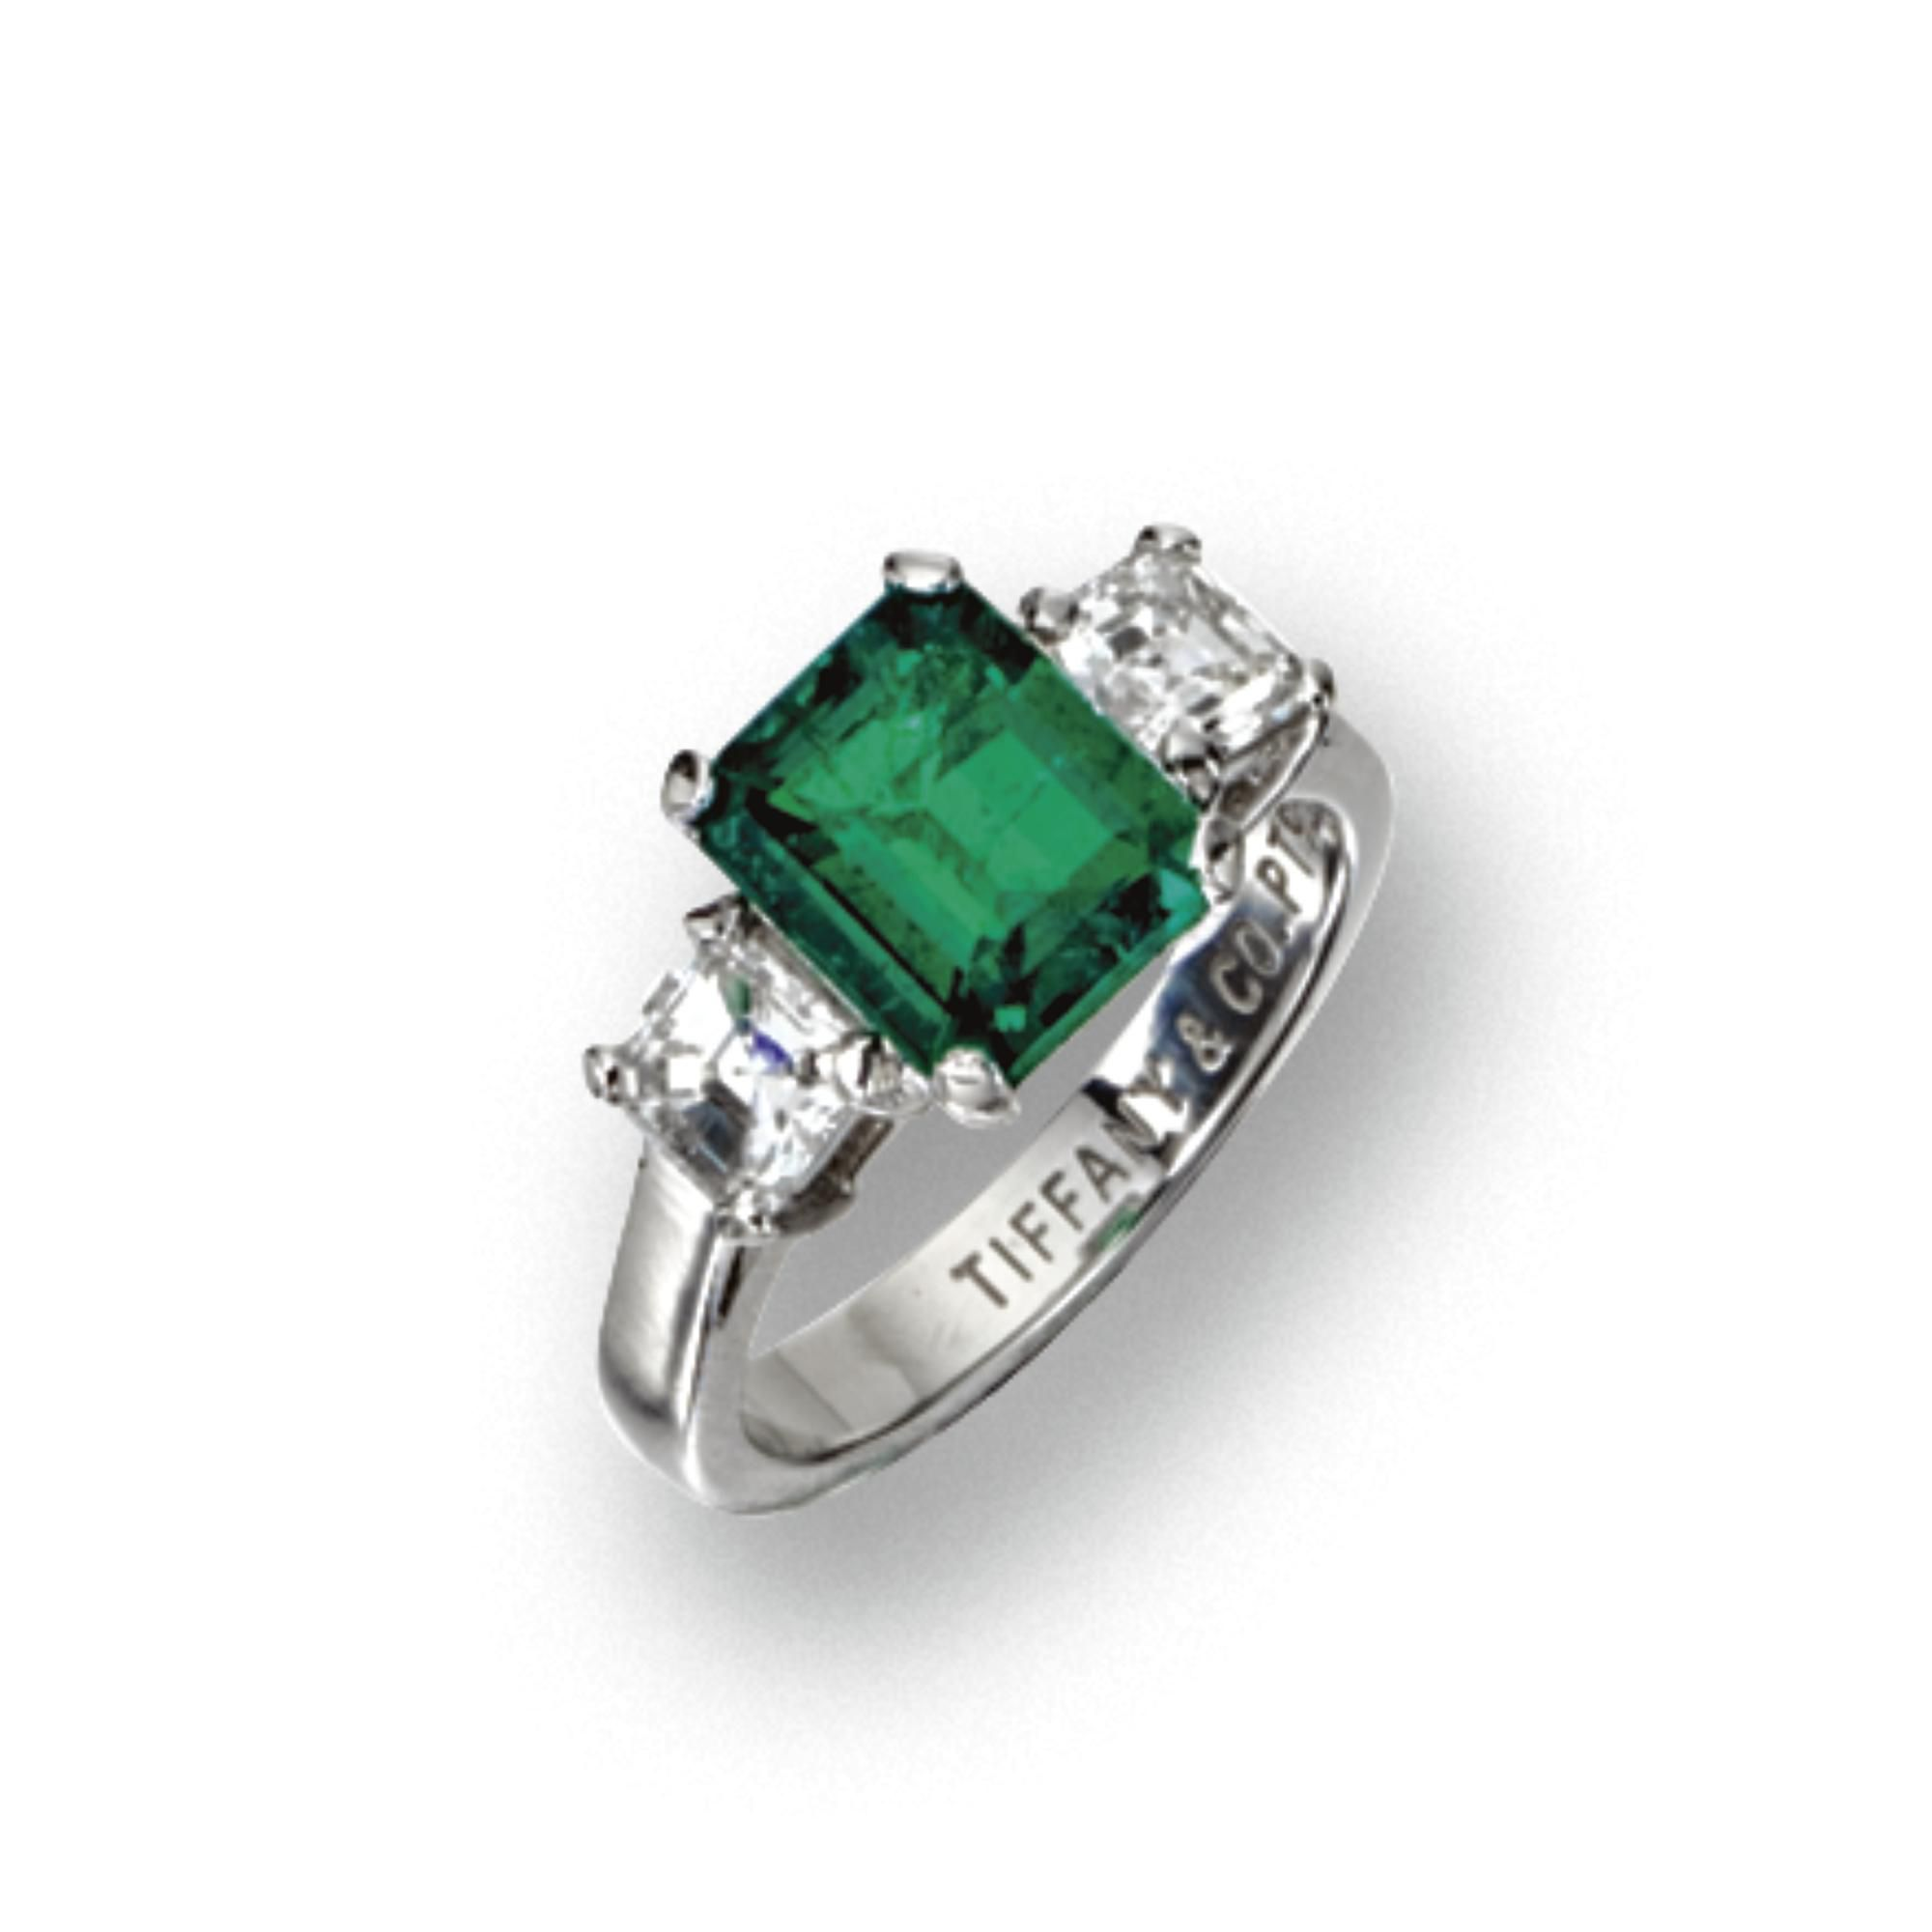 Emerald And Diamond Ring Tiffany Co The Emerald Cut Emerald Weighing   Carats Flanked By  Square Cut Diamonds Weighing Approximately   Carat